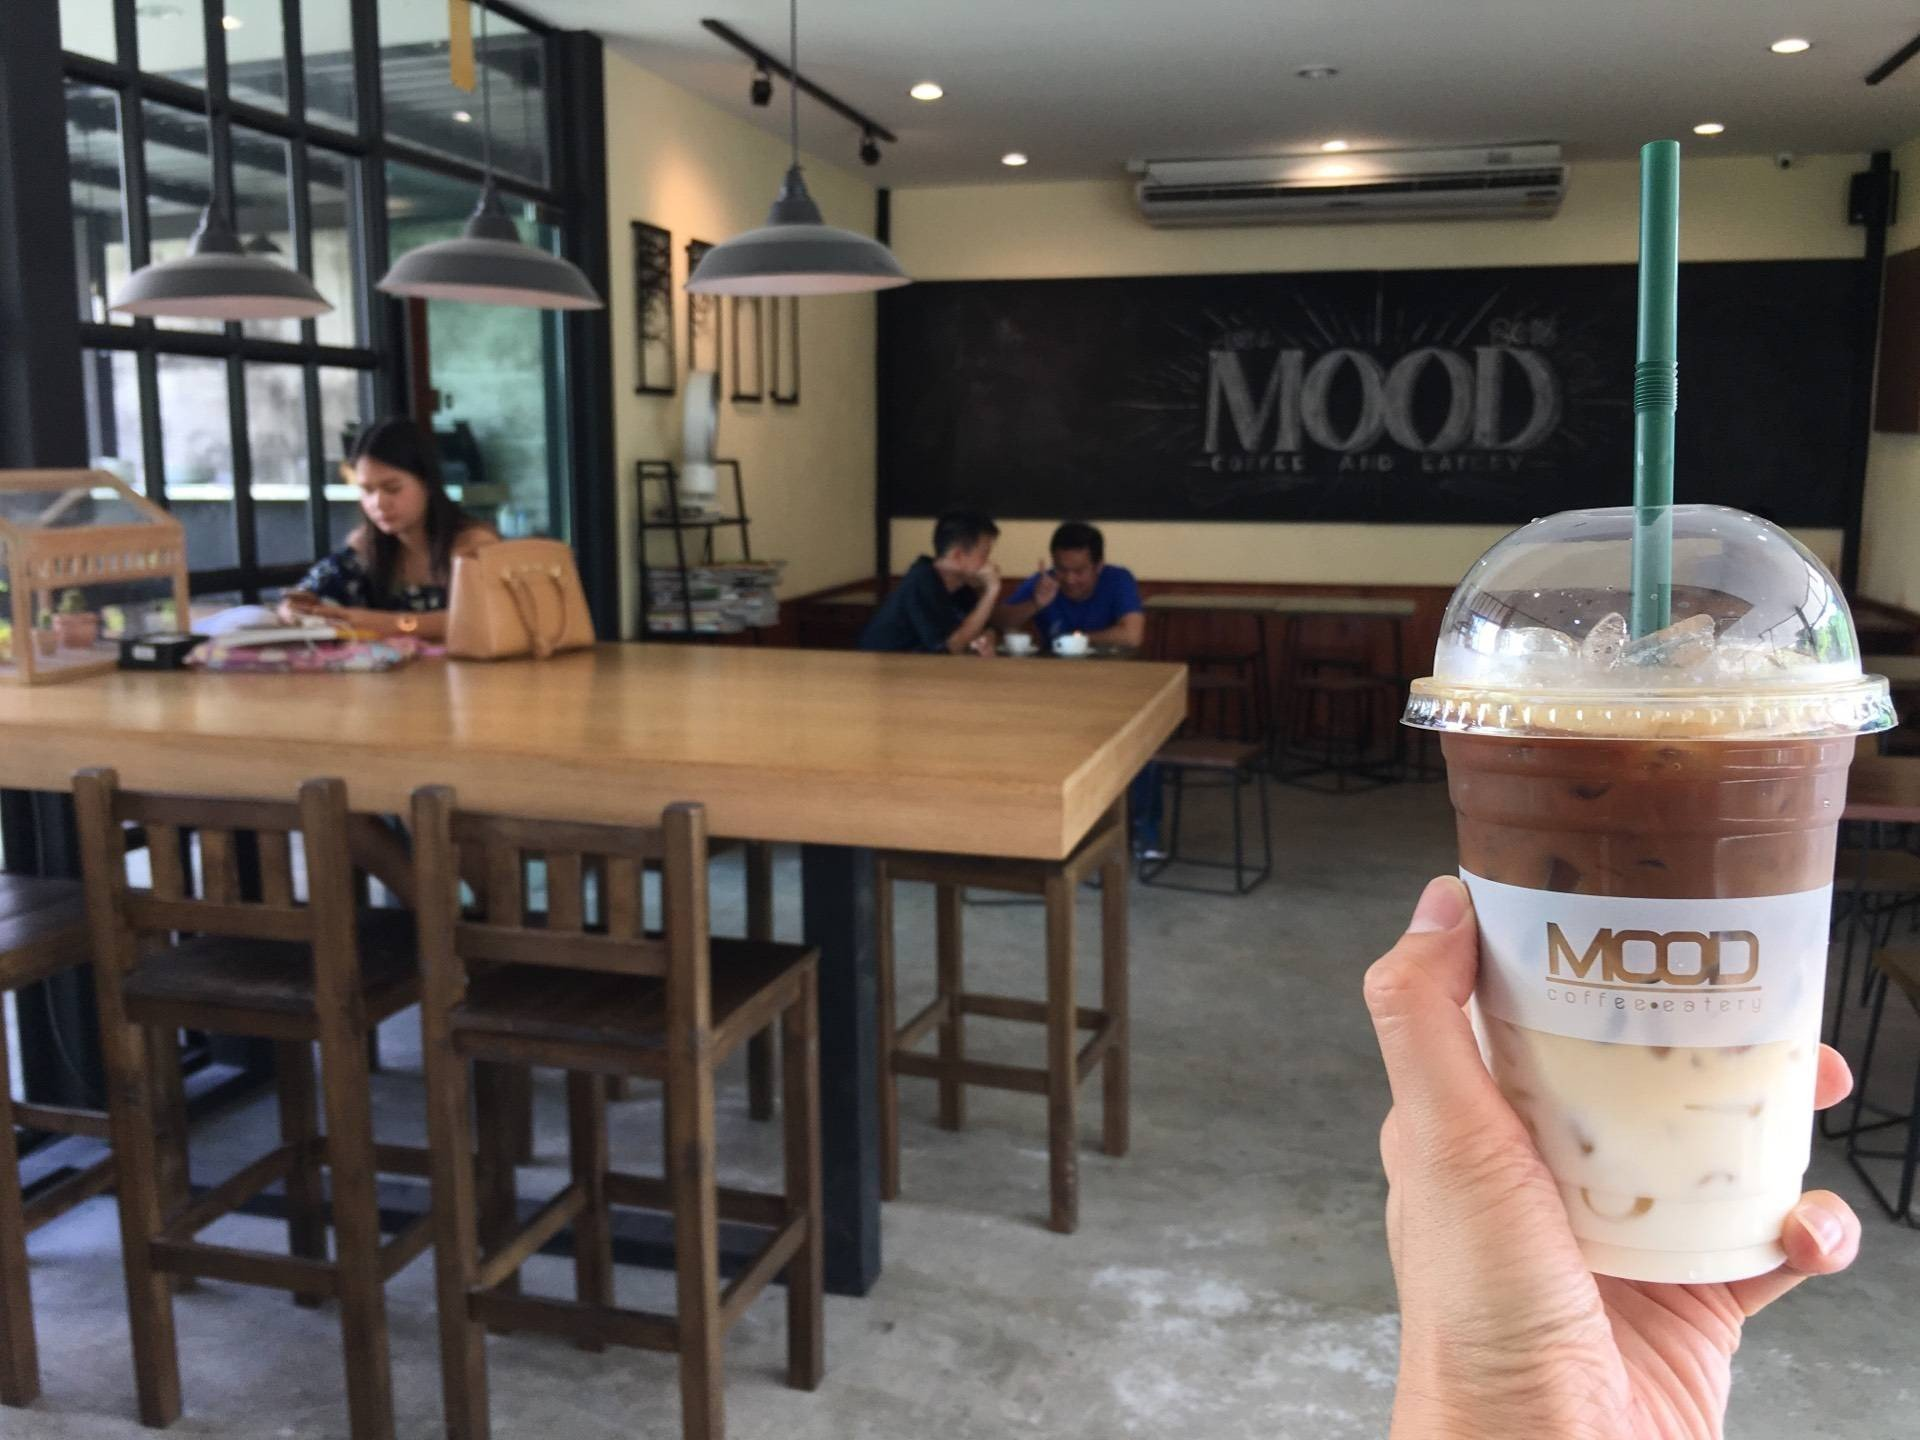 Mood Coffee Eatery